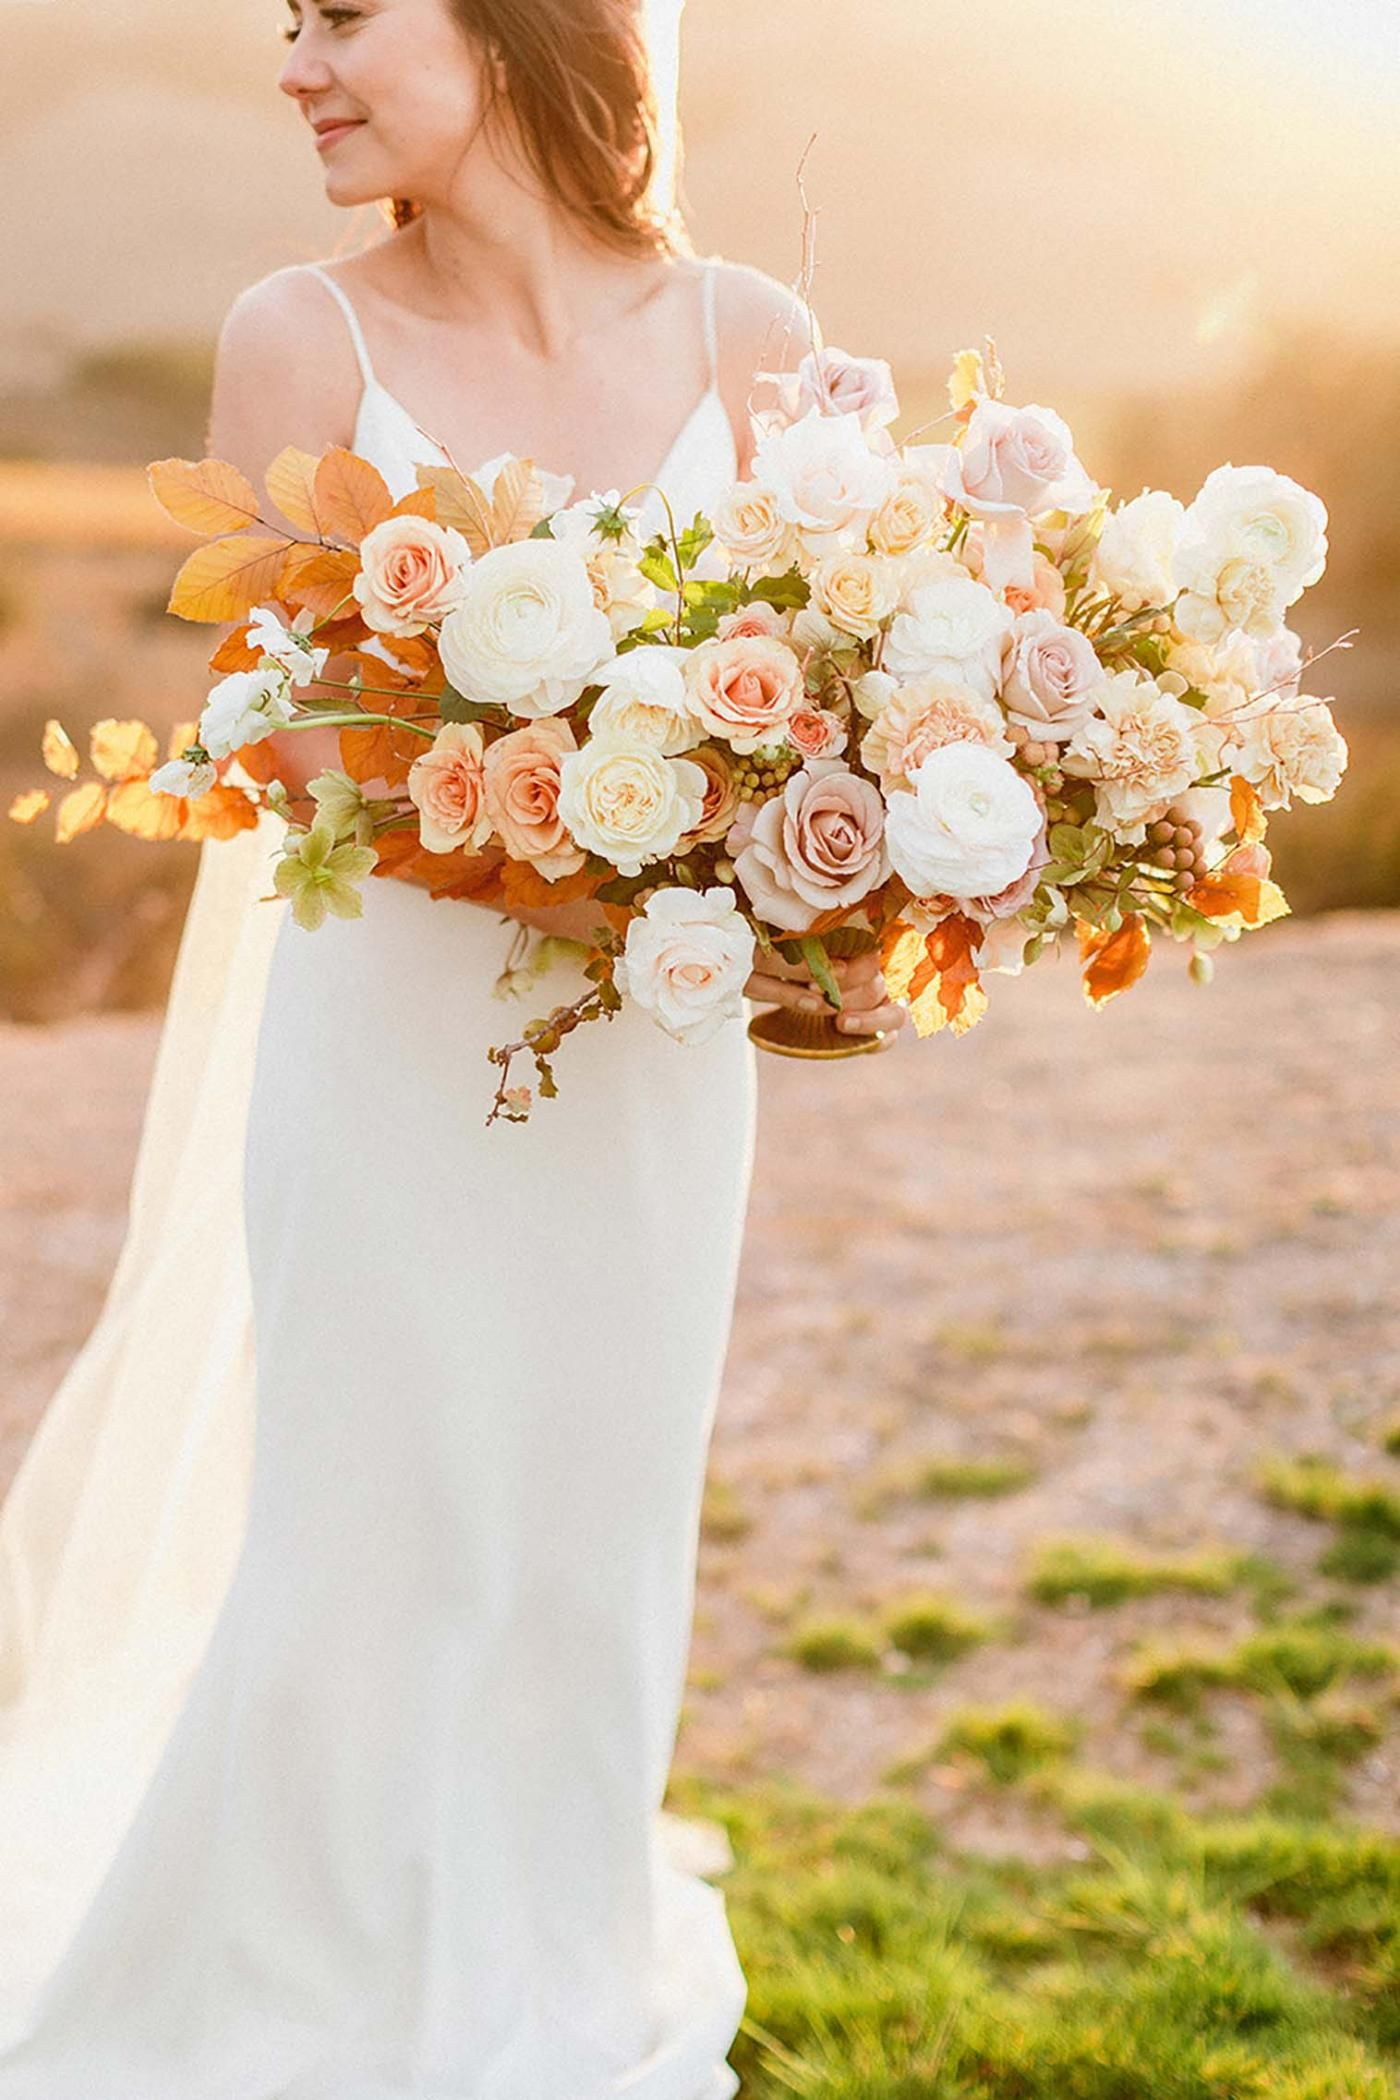 39854c2a24d8 this bridal bouquet contains a lot of roses in different colors like white,  blush and light apricot combined with some fall foliage, it makes the  perfect ...